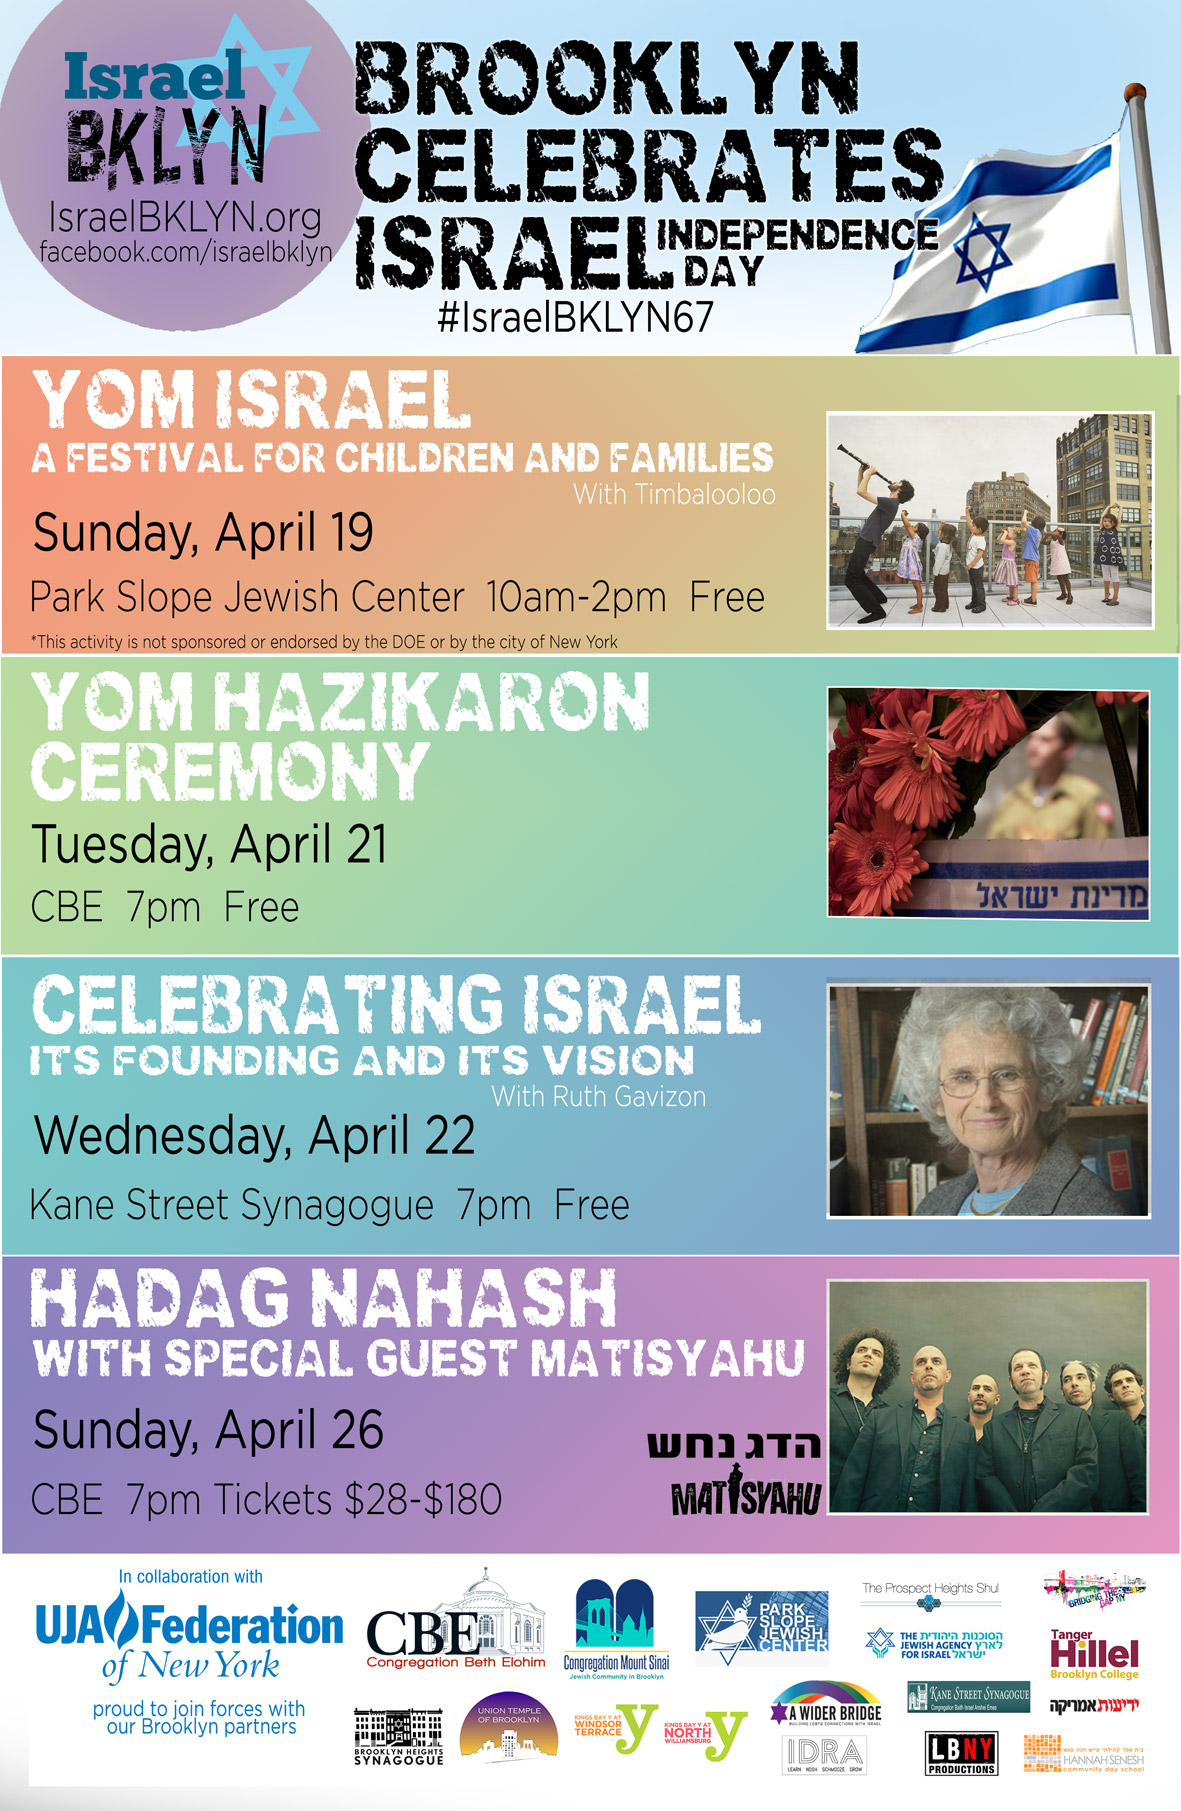 Brooklyn Celebrates Israel Independence Day - Event - Park Slope